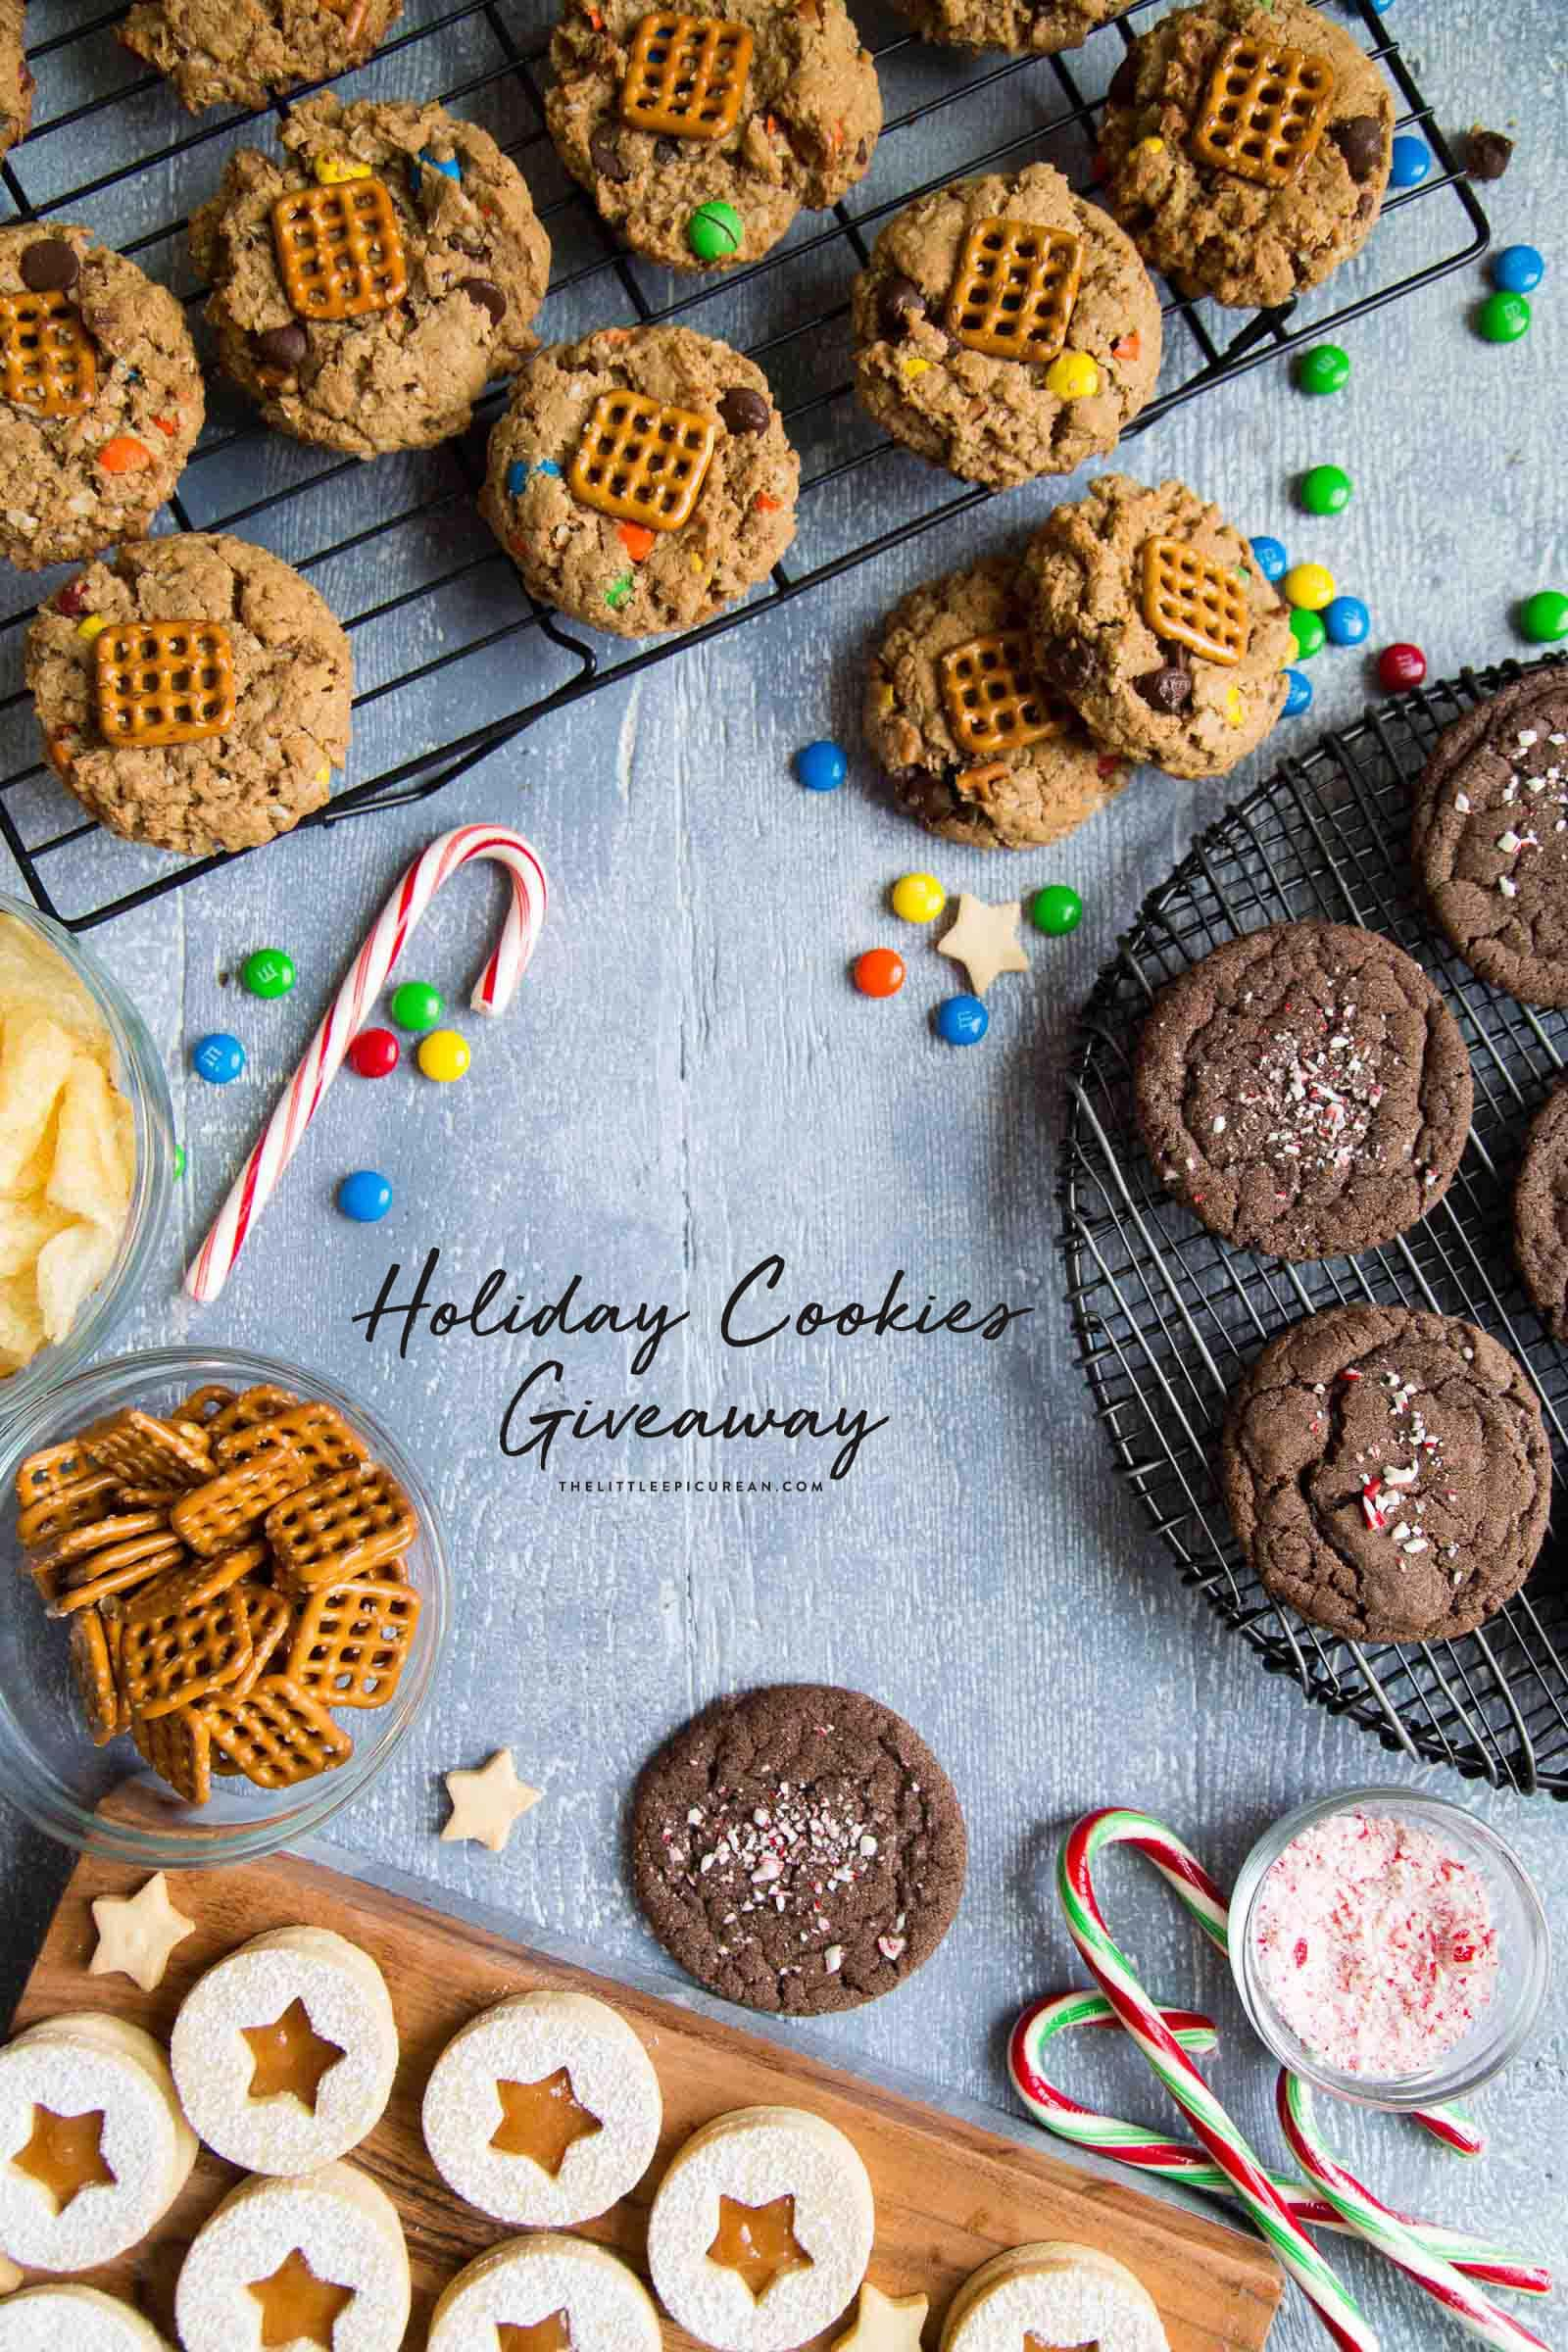 Holiday Cookies Giveaway